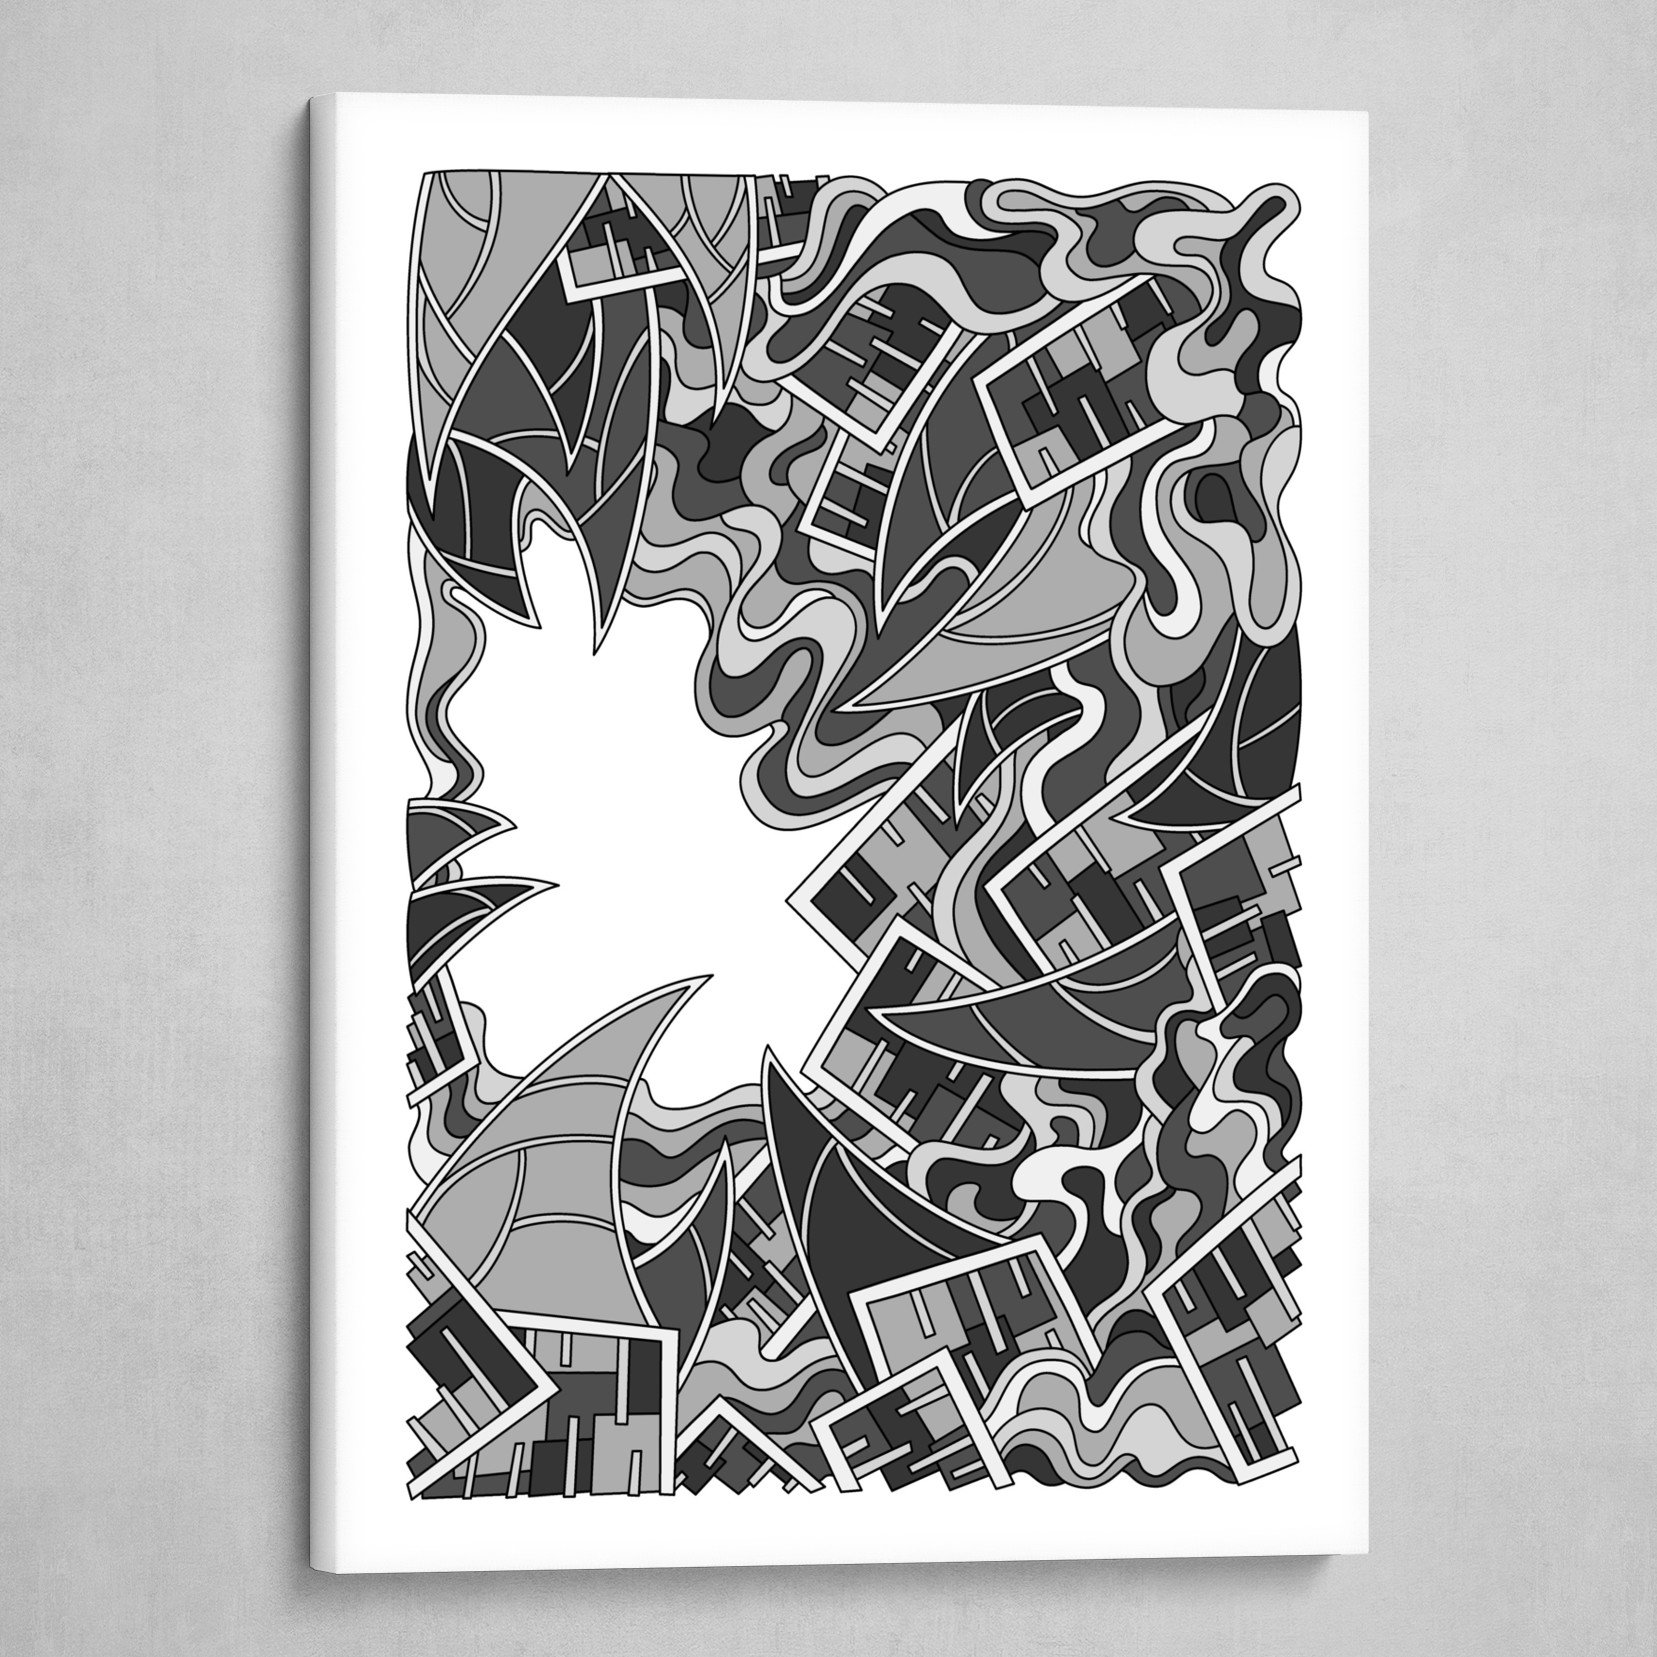 Wandering Abstract Line Art 25: Grayscale